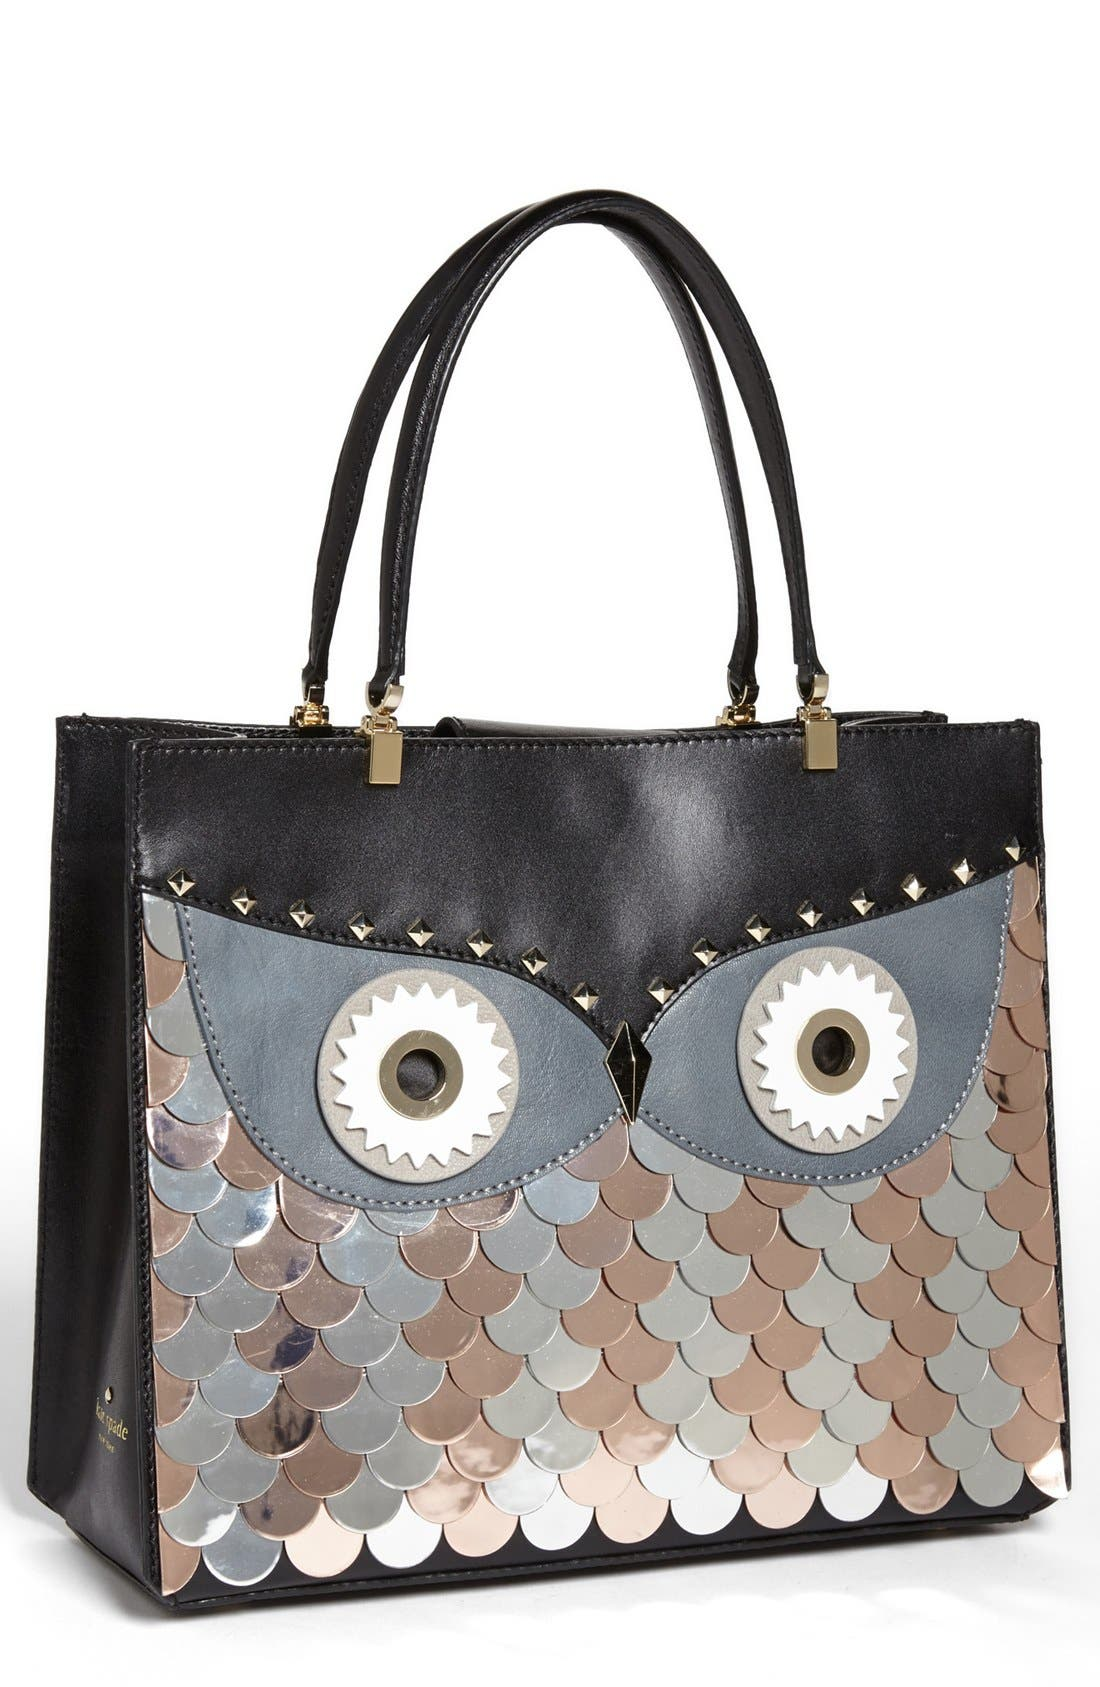 Main Image - kate spade new york 'wise owl quinn' tote, medium